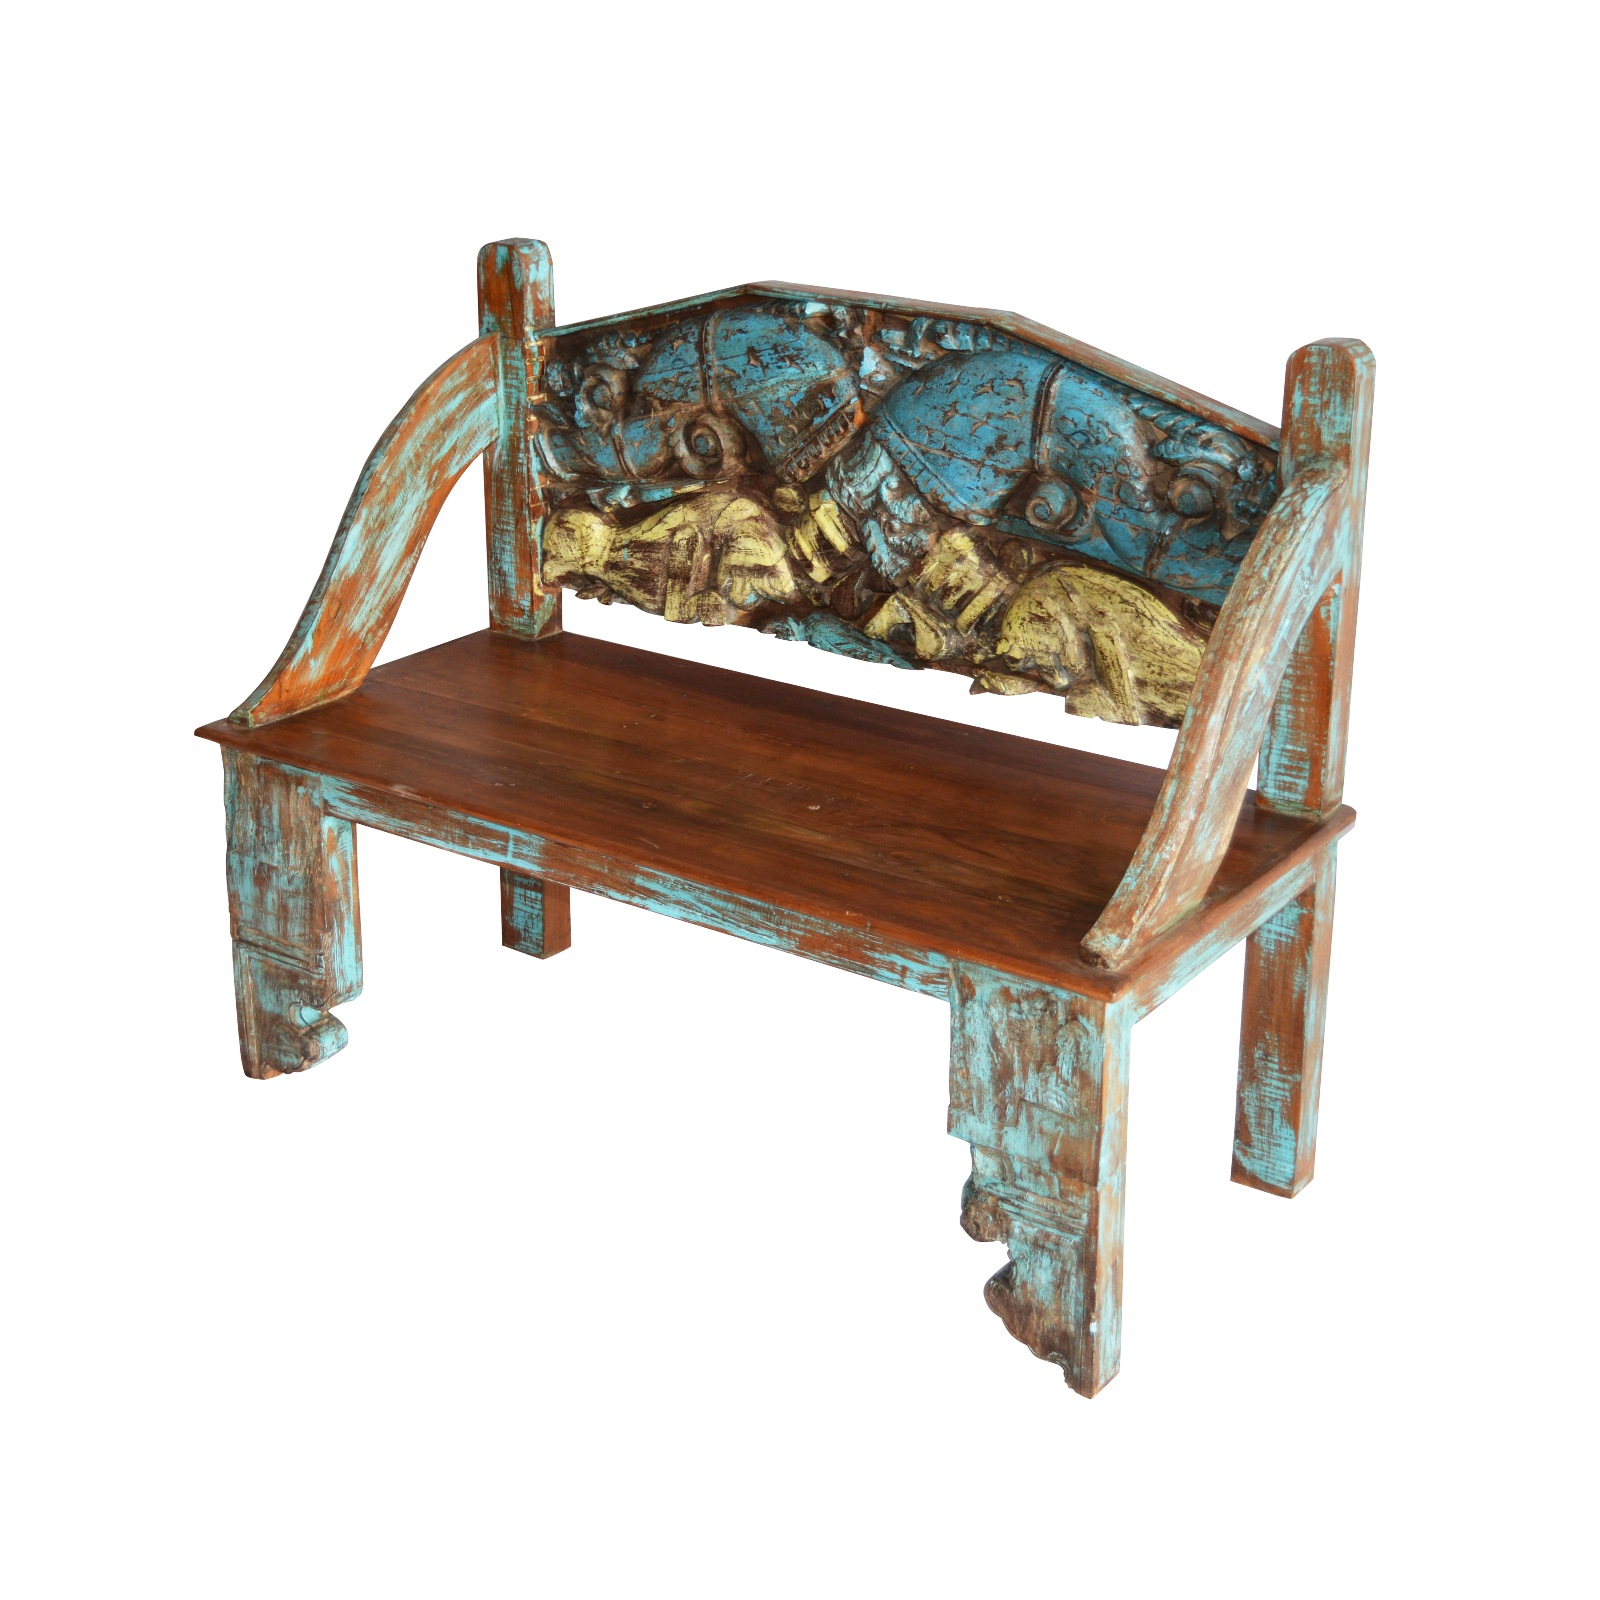 Old Teak Wood Carved Bench Indian Furniture Zone By